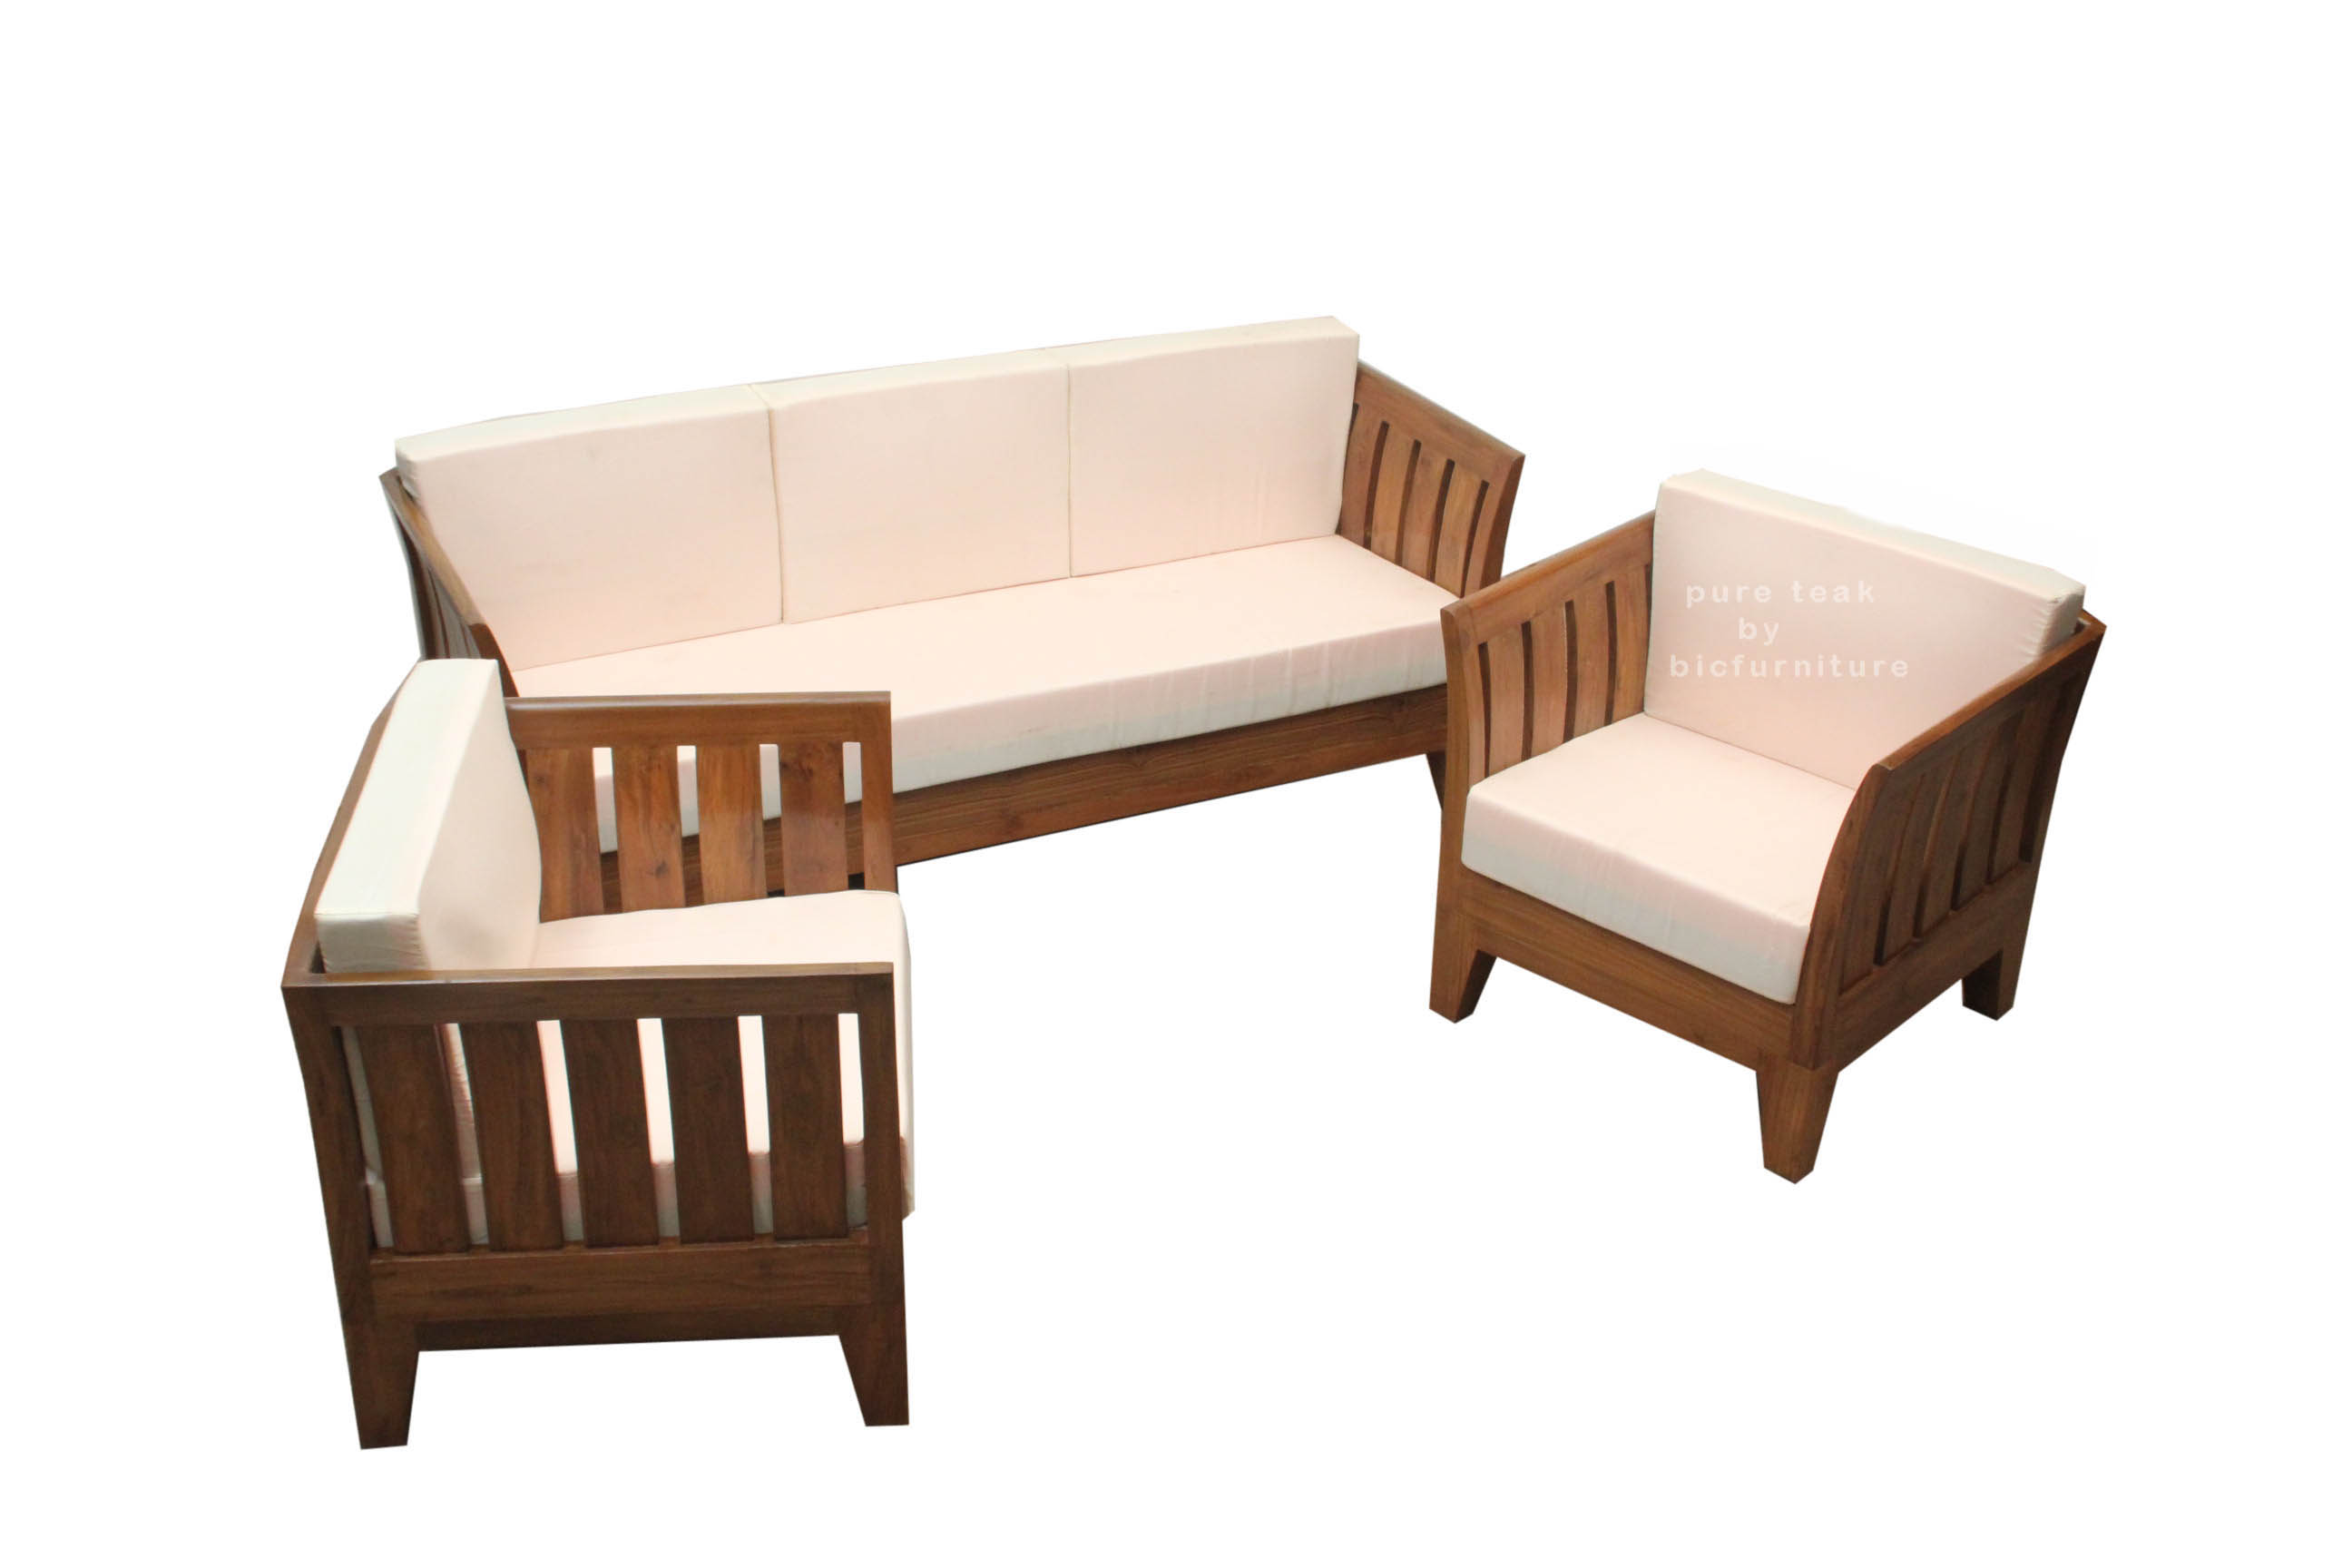 Teak Wood Sofa Set Ws 60 Details Bic Furniture India ~ Wooden Sofa Sets For Living Room